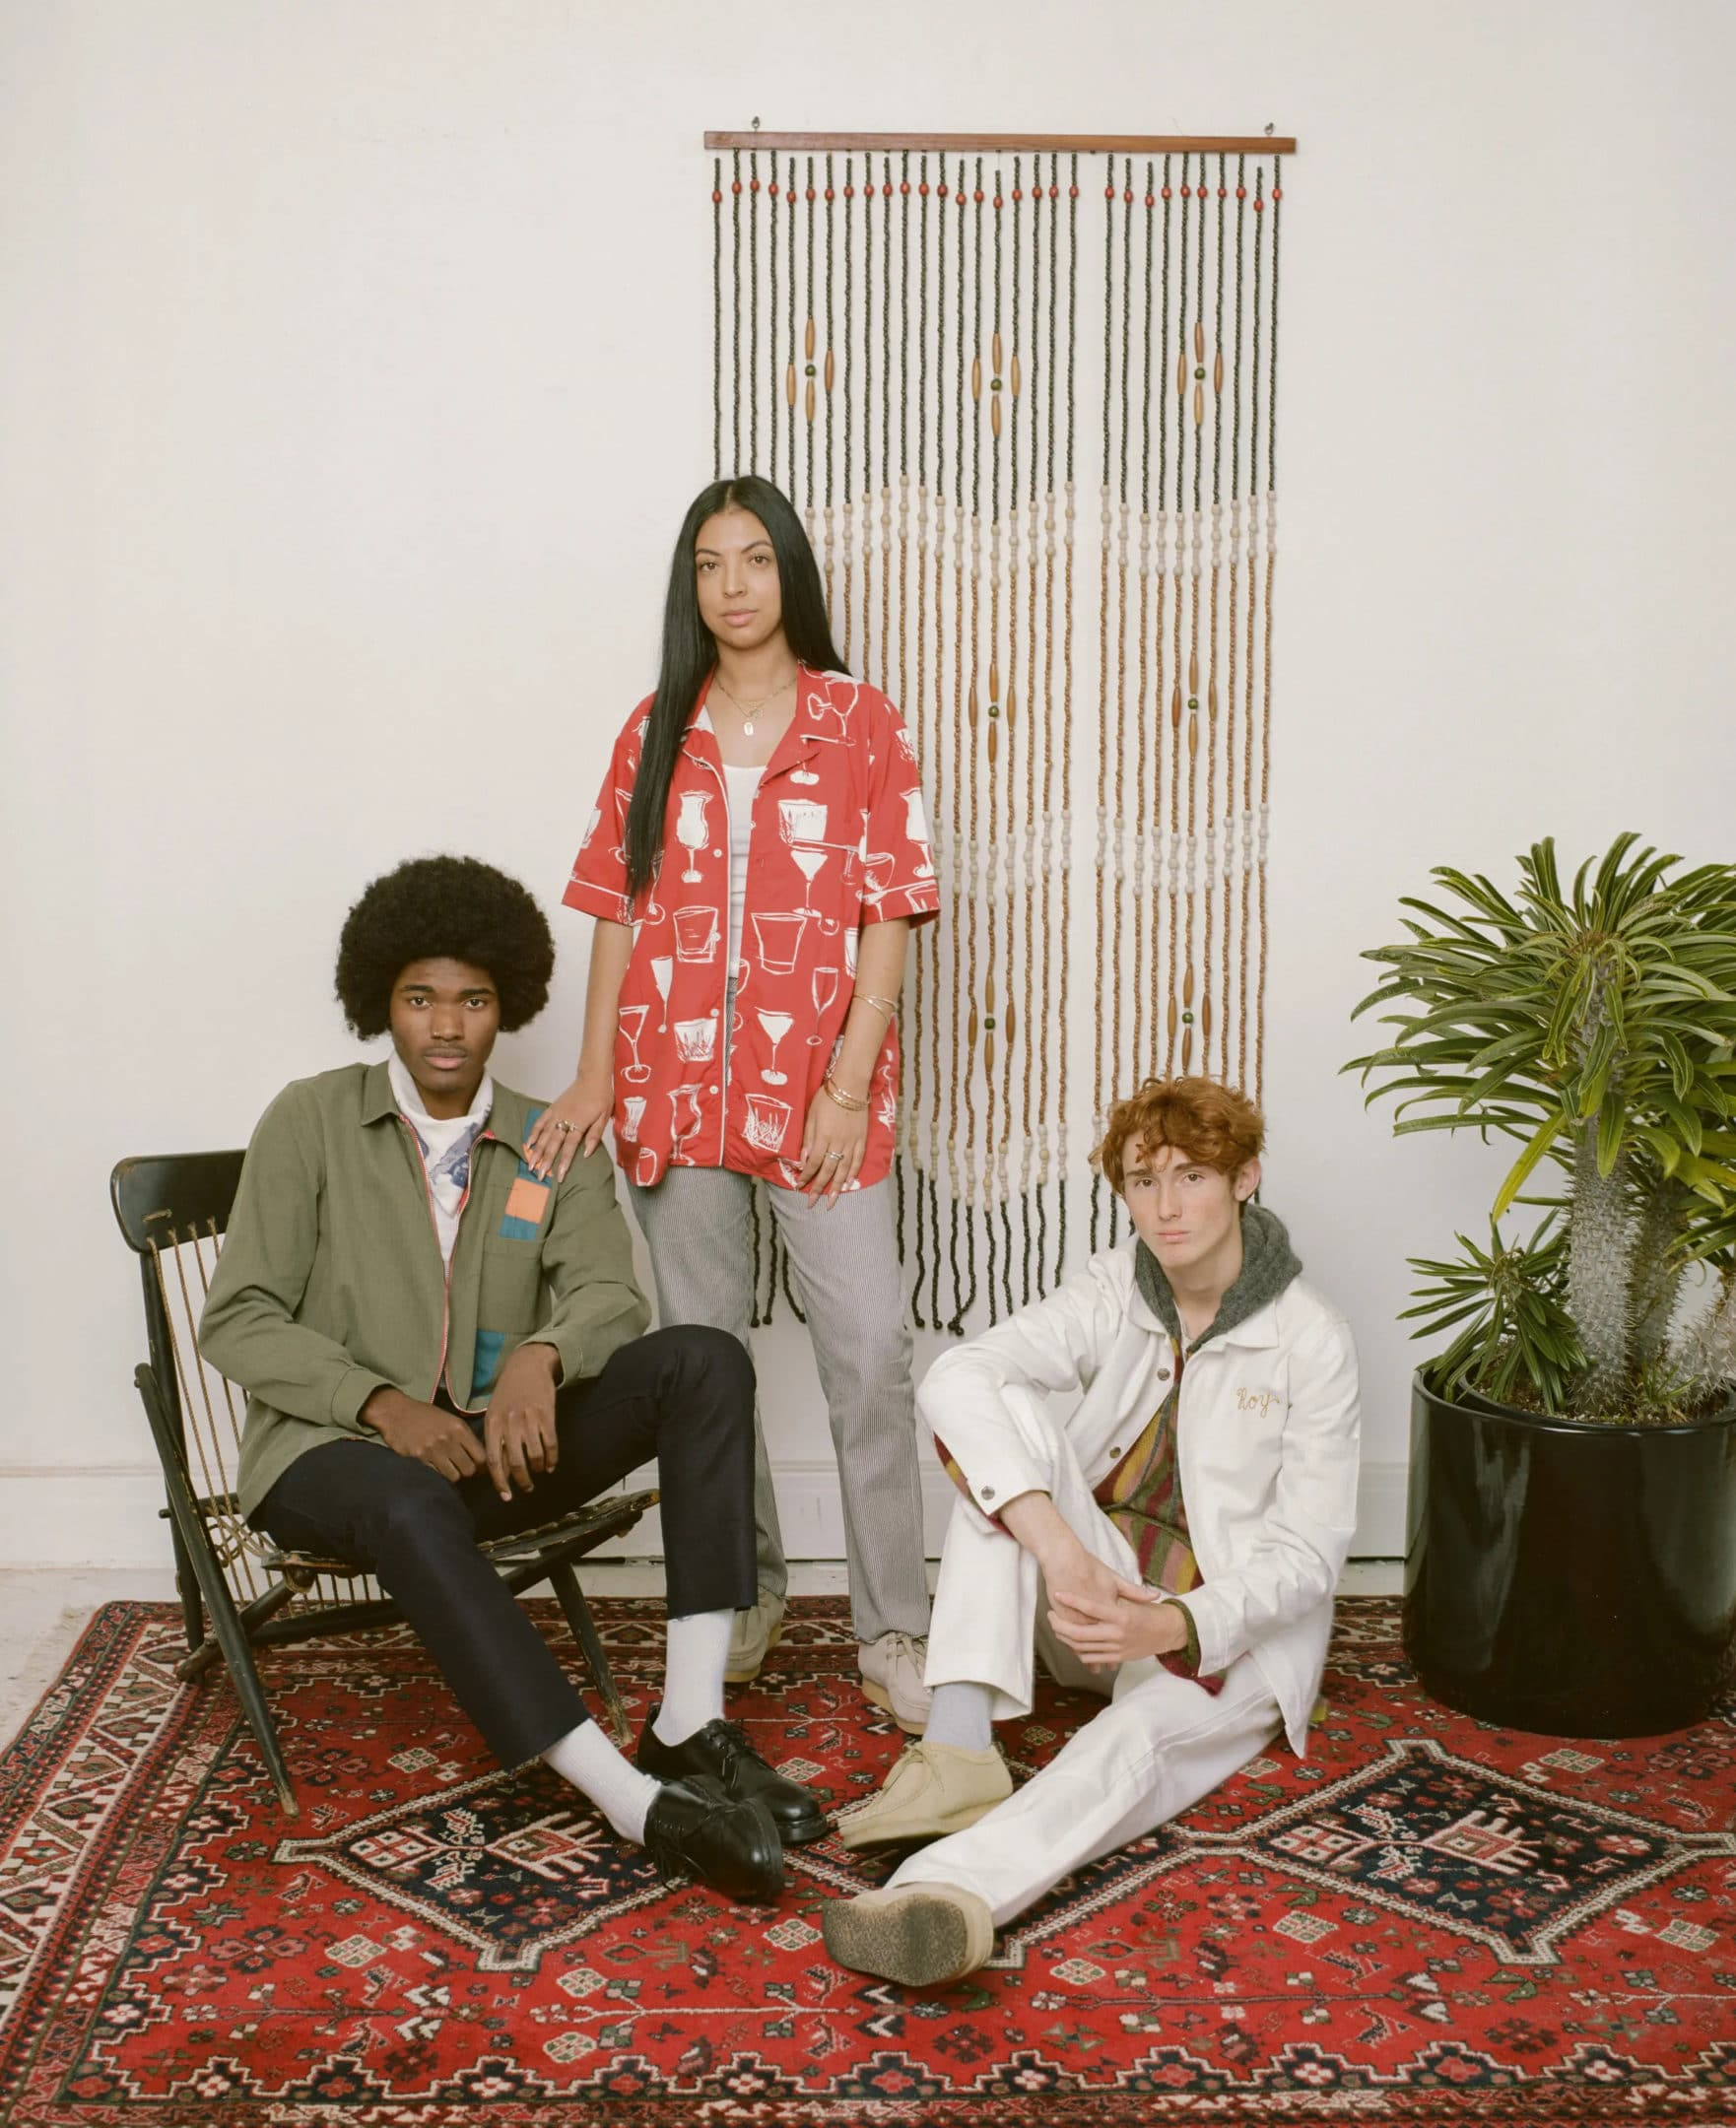 Brownstone Spring/Summer 2019 interview